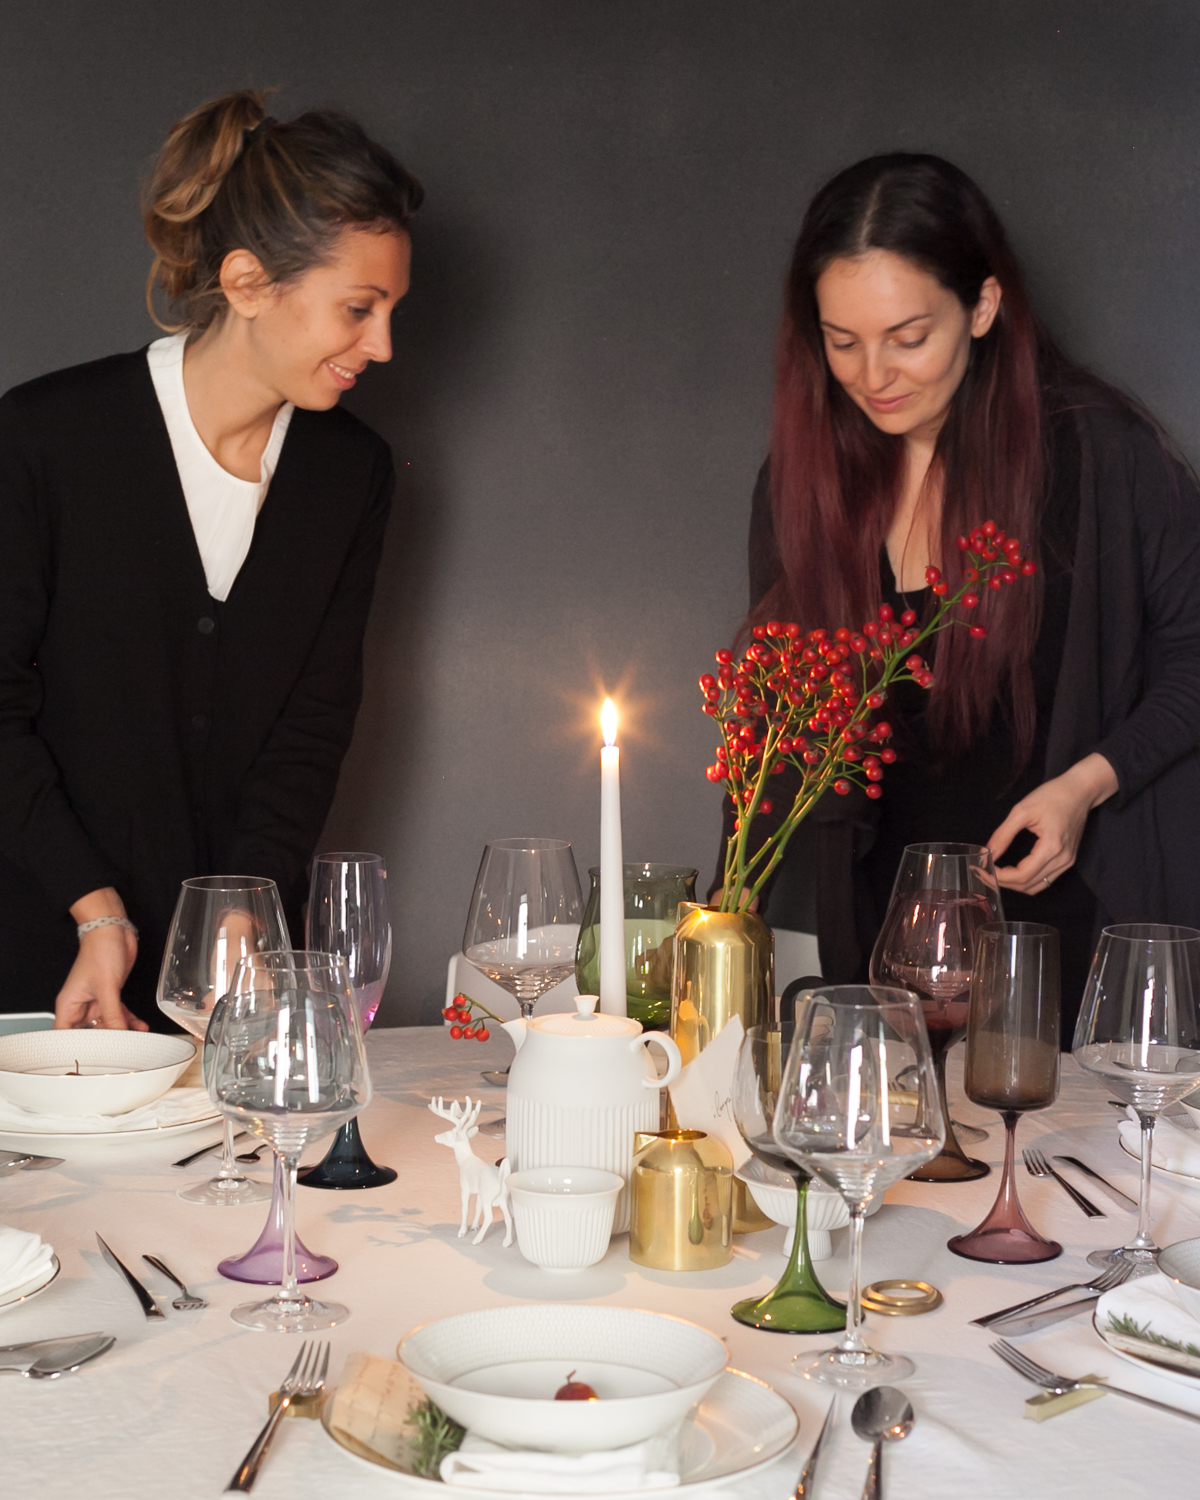 SET THE TABLE STYLING EVENTO SPAZIO MATERIAE NAPOLI FORME DI FARINA TAVOLA NATALE PHOTO (2 di 6).jpg